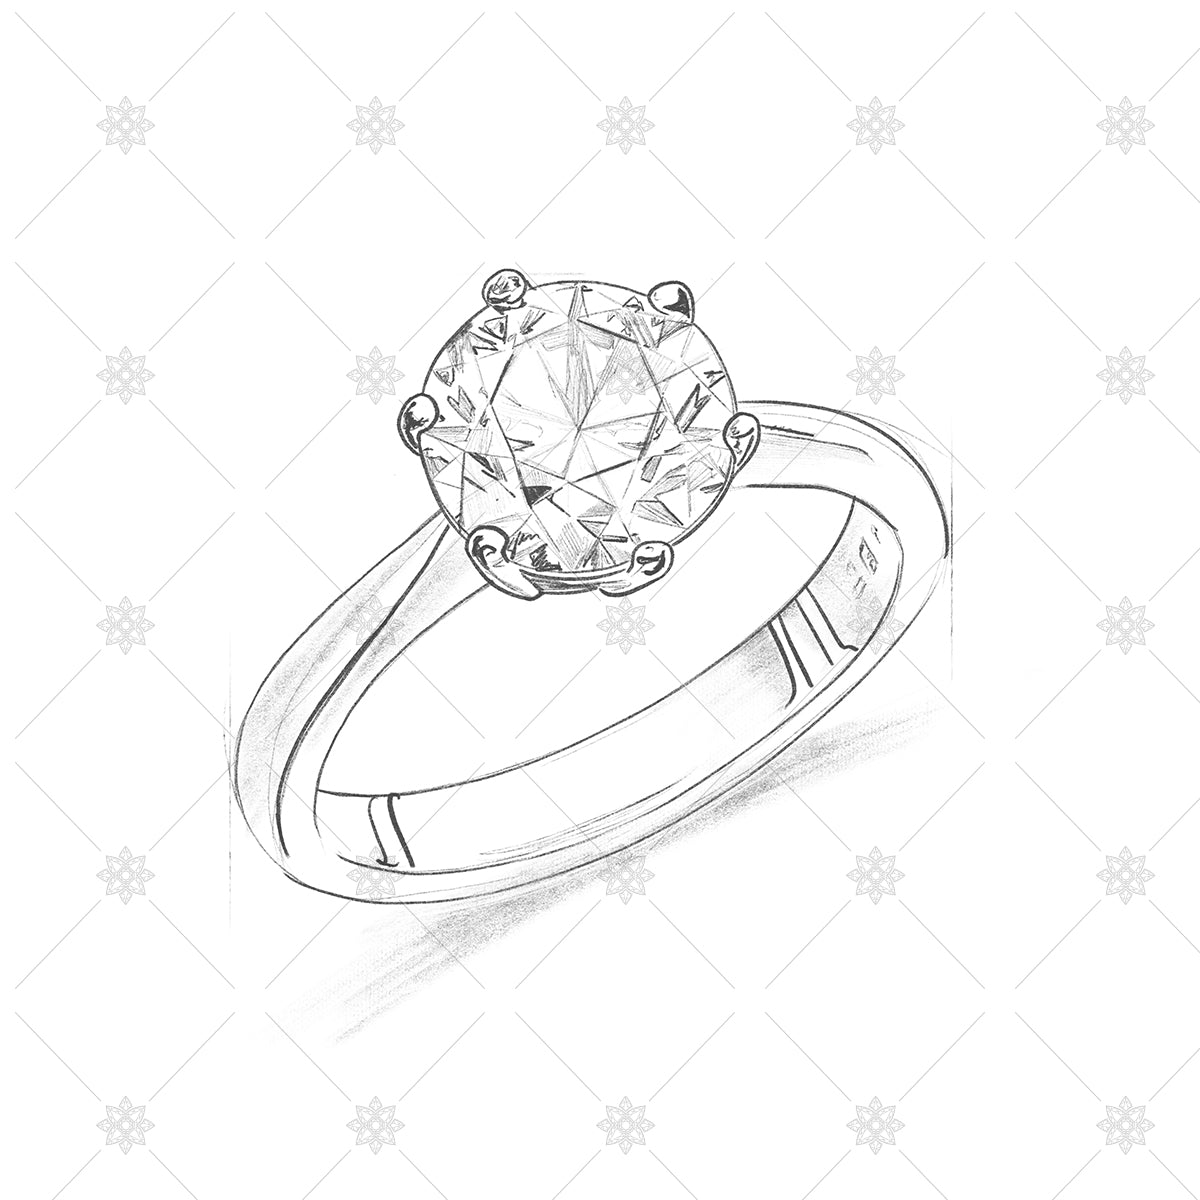 Diamond ring pencil sketch drawing